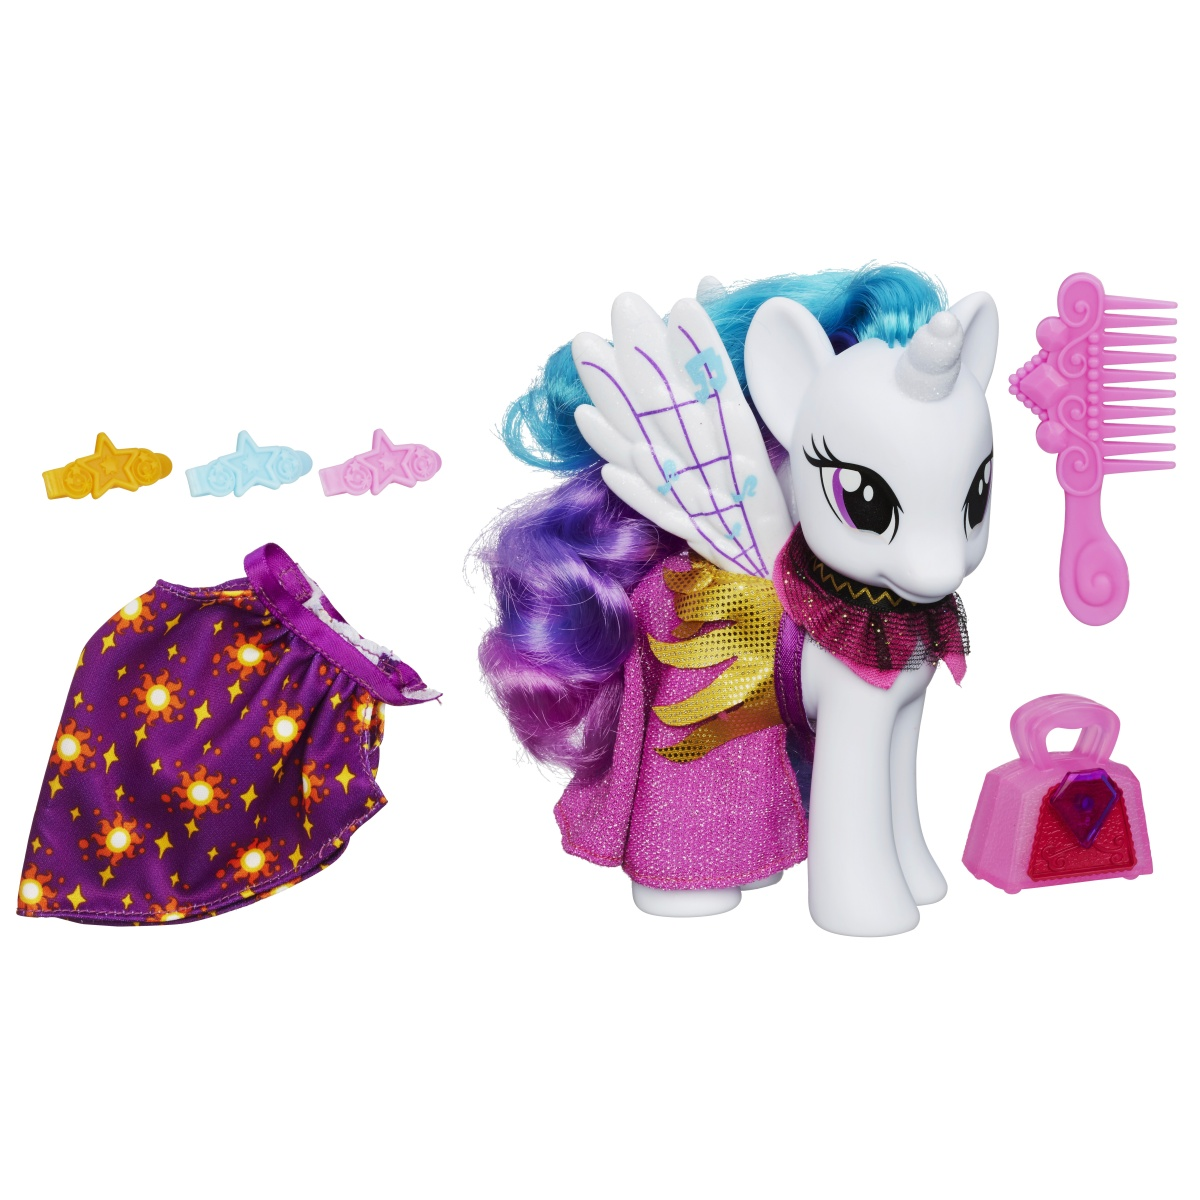 39 Music Note 39 Princess Luna And Celestia Found In Packaging Mlp Merch